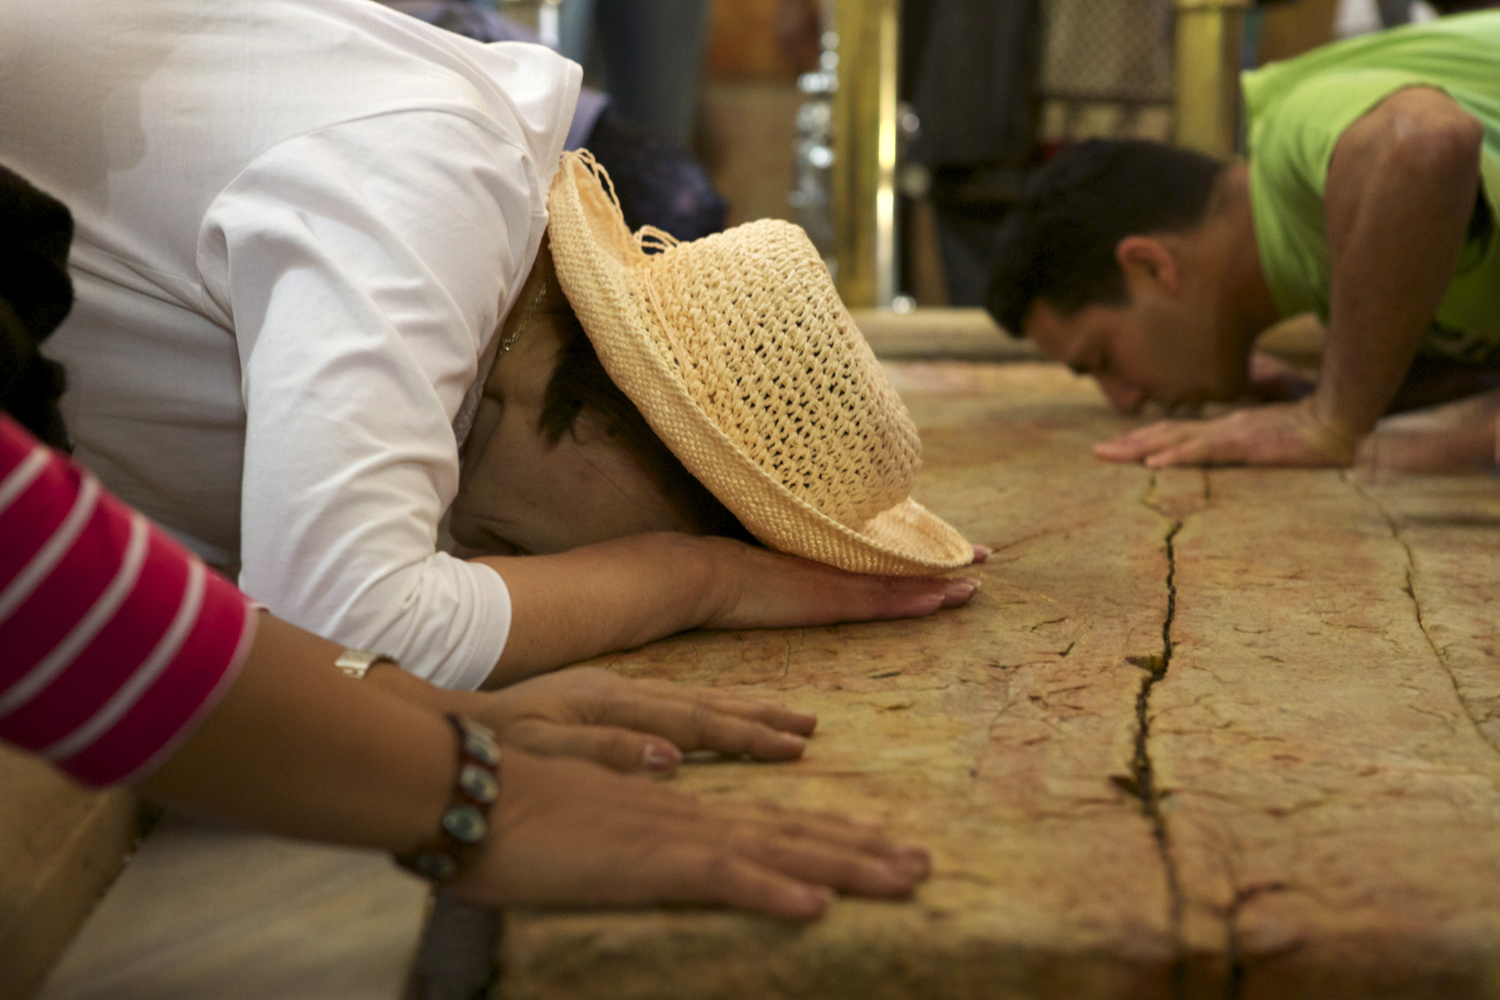 Visitors kiss and touch Jerusalem's large slab of holy stone at the Church of the Holy Sepulchre, also called the Basilica of the Holy Sepulchre, in the Christian Quarter of the walled Old City. The Church, which is considered the most important shrine in the Christian world, is believed to have been built over the site where Christ was crucified, buried, and resurrected.